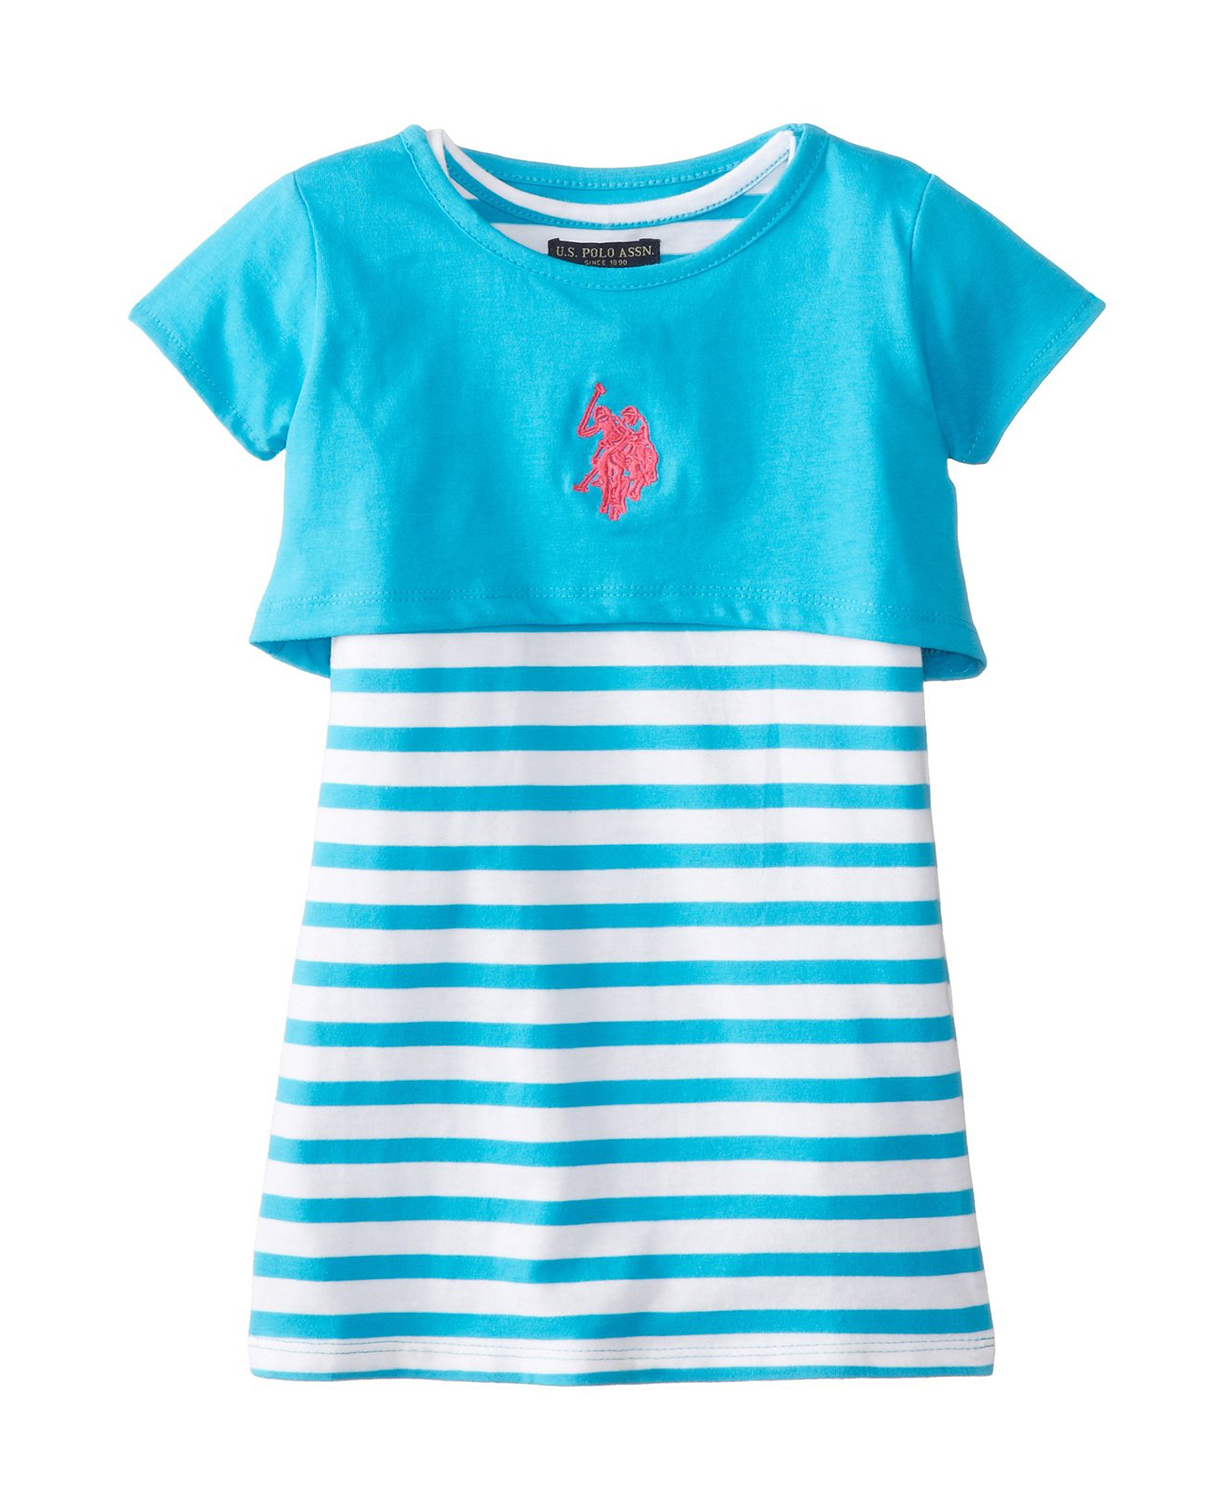 Shop Target for Toddler Girls' Clothing you will love at great low prices. Spend $35+ or use your REDcard & get free 2-day shipping on most items or same-day pick-up in store.